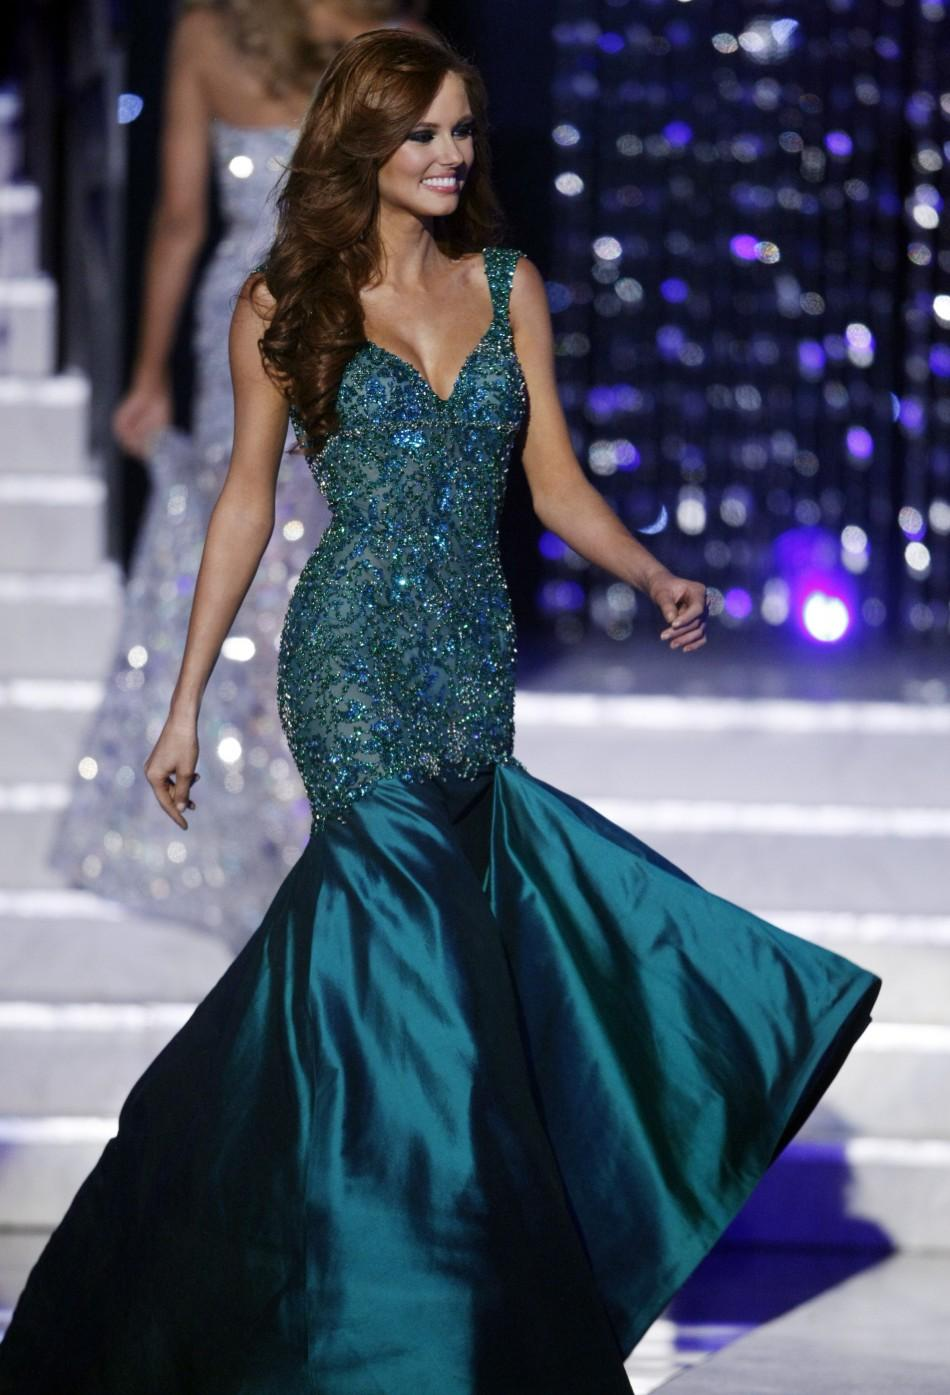 Miss California Alyssa Campanella competes in her evening gown during the 2011 Miss USA pageant in the Theatre for the Performing Arts at Planet Hollywood Hotel and Casino in Las Vegas, Nevada June 19, 2011.